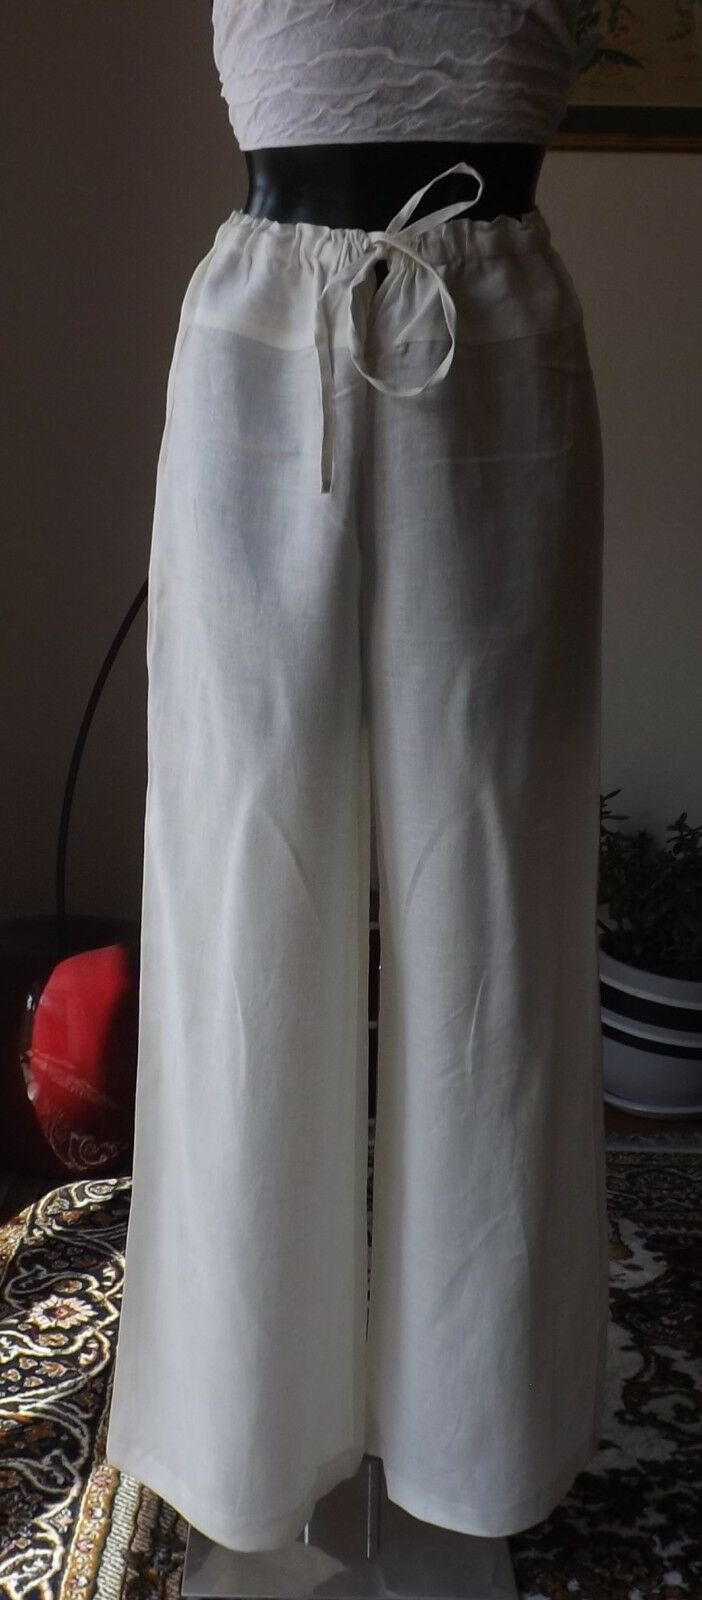 Women wear Sarah Pacini high waist 100% Linen Ivoire color size 2 trousers 7163